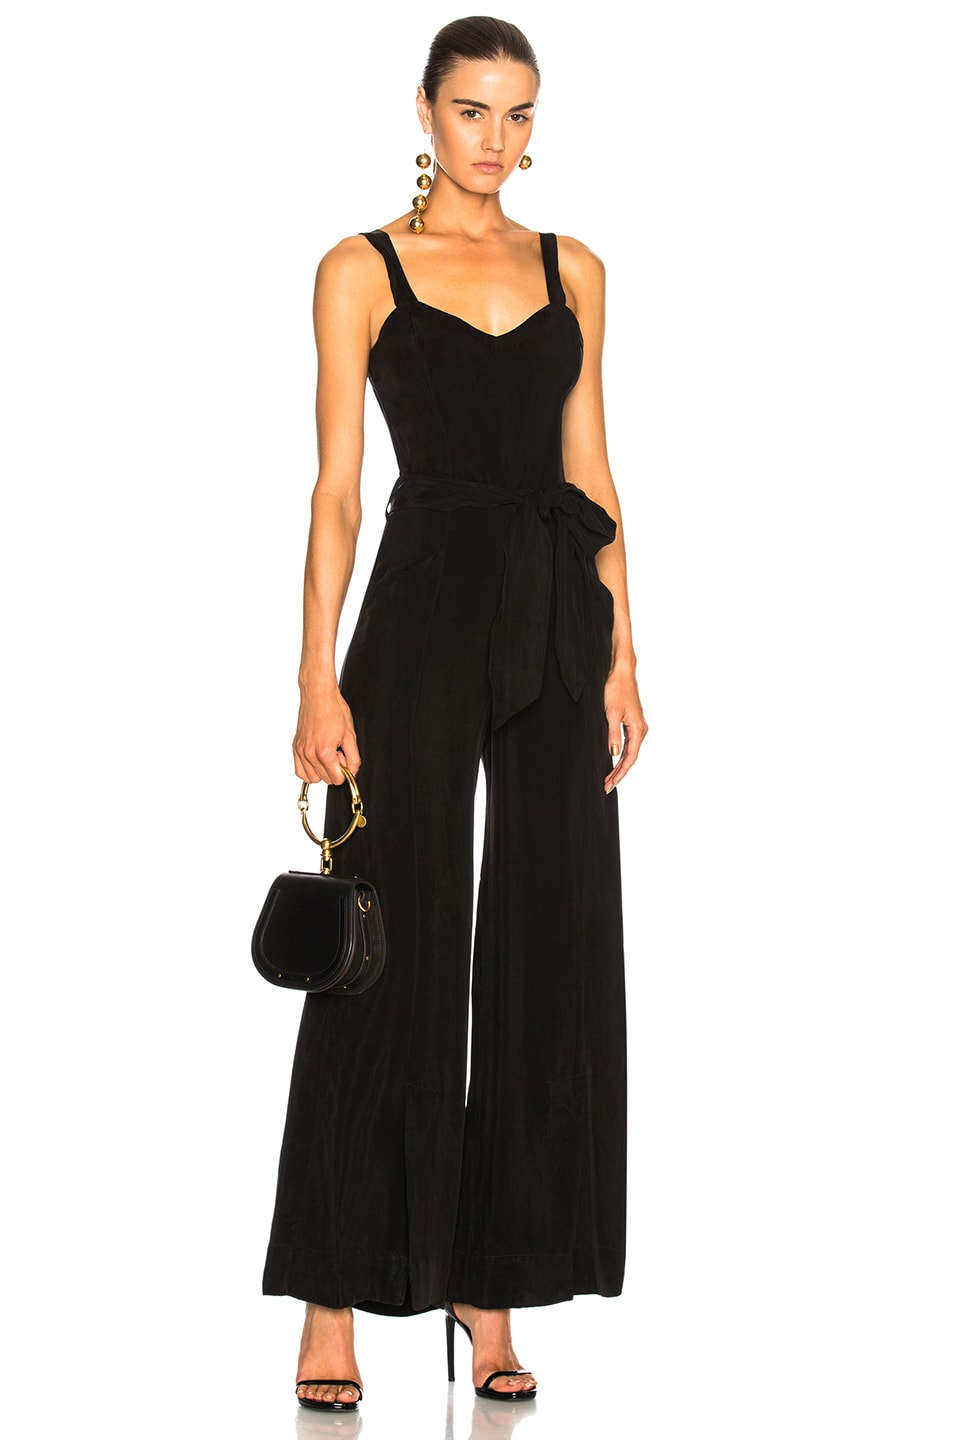 Image 1 of Calvin Rucker Why Don't You and I Jumpsuit in Black